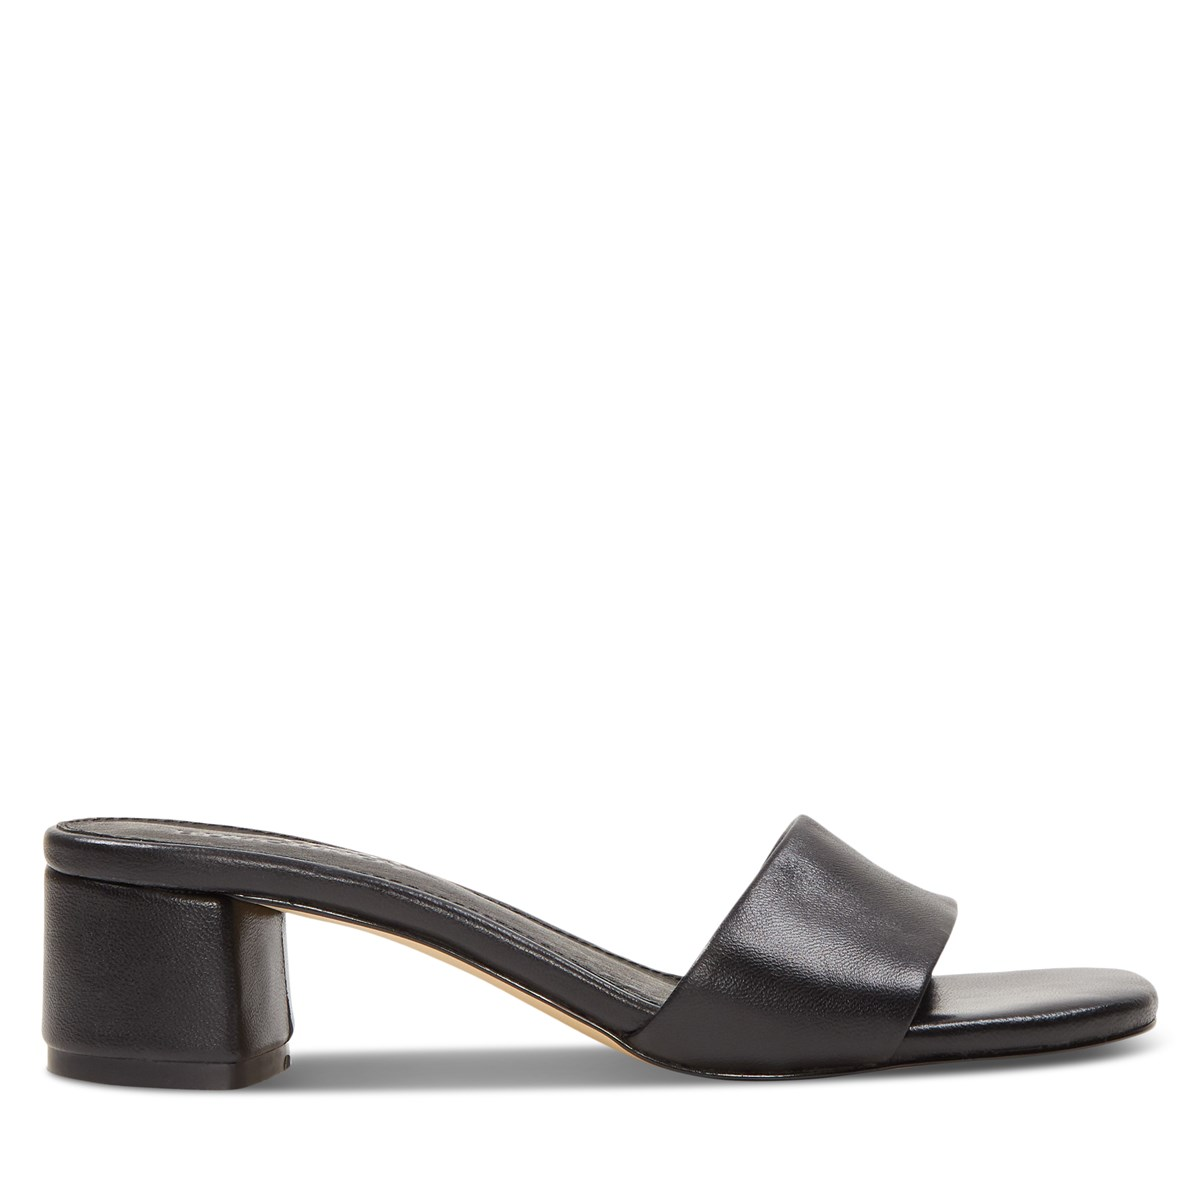 Women's Ella Heeled Mules in Black